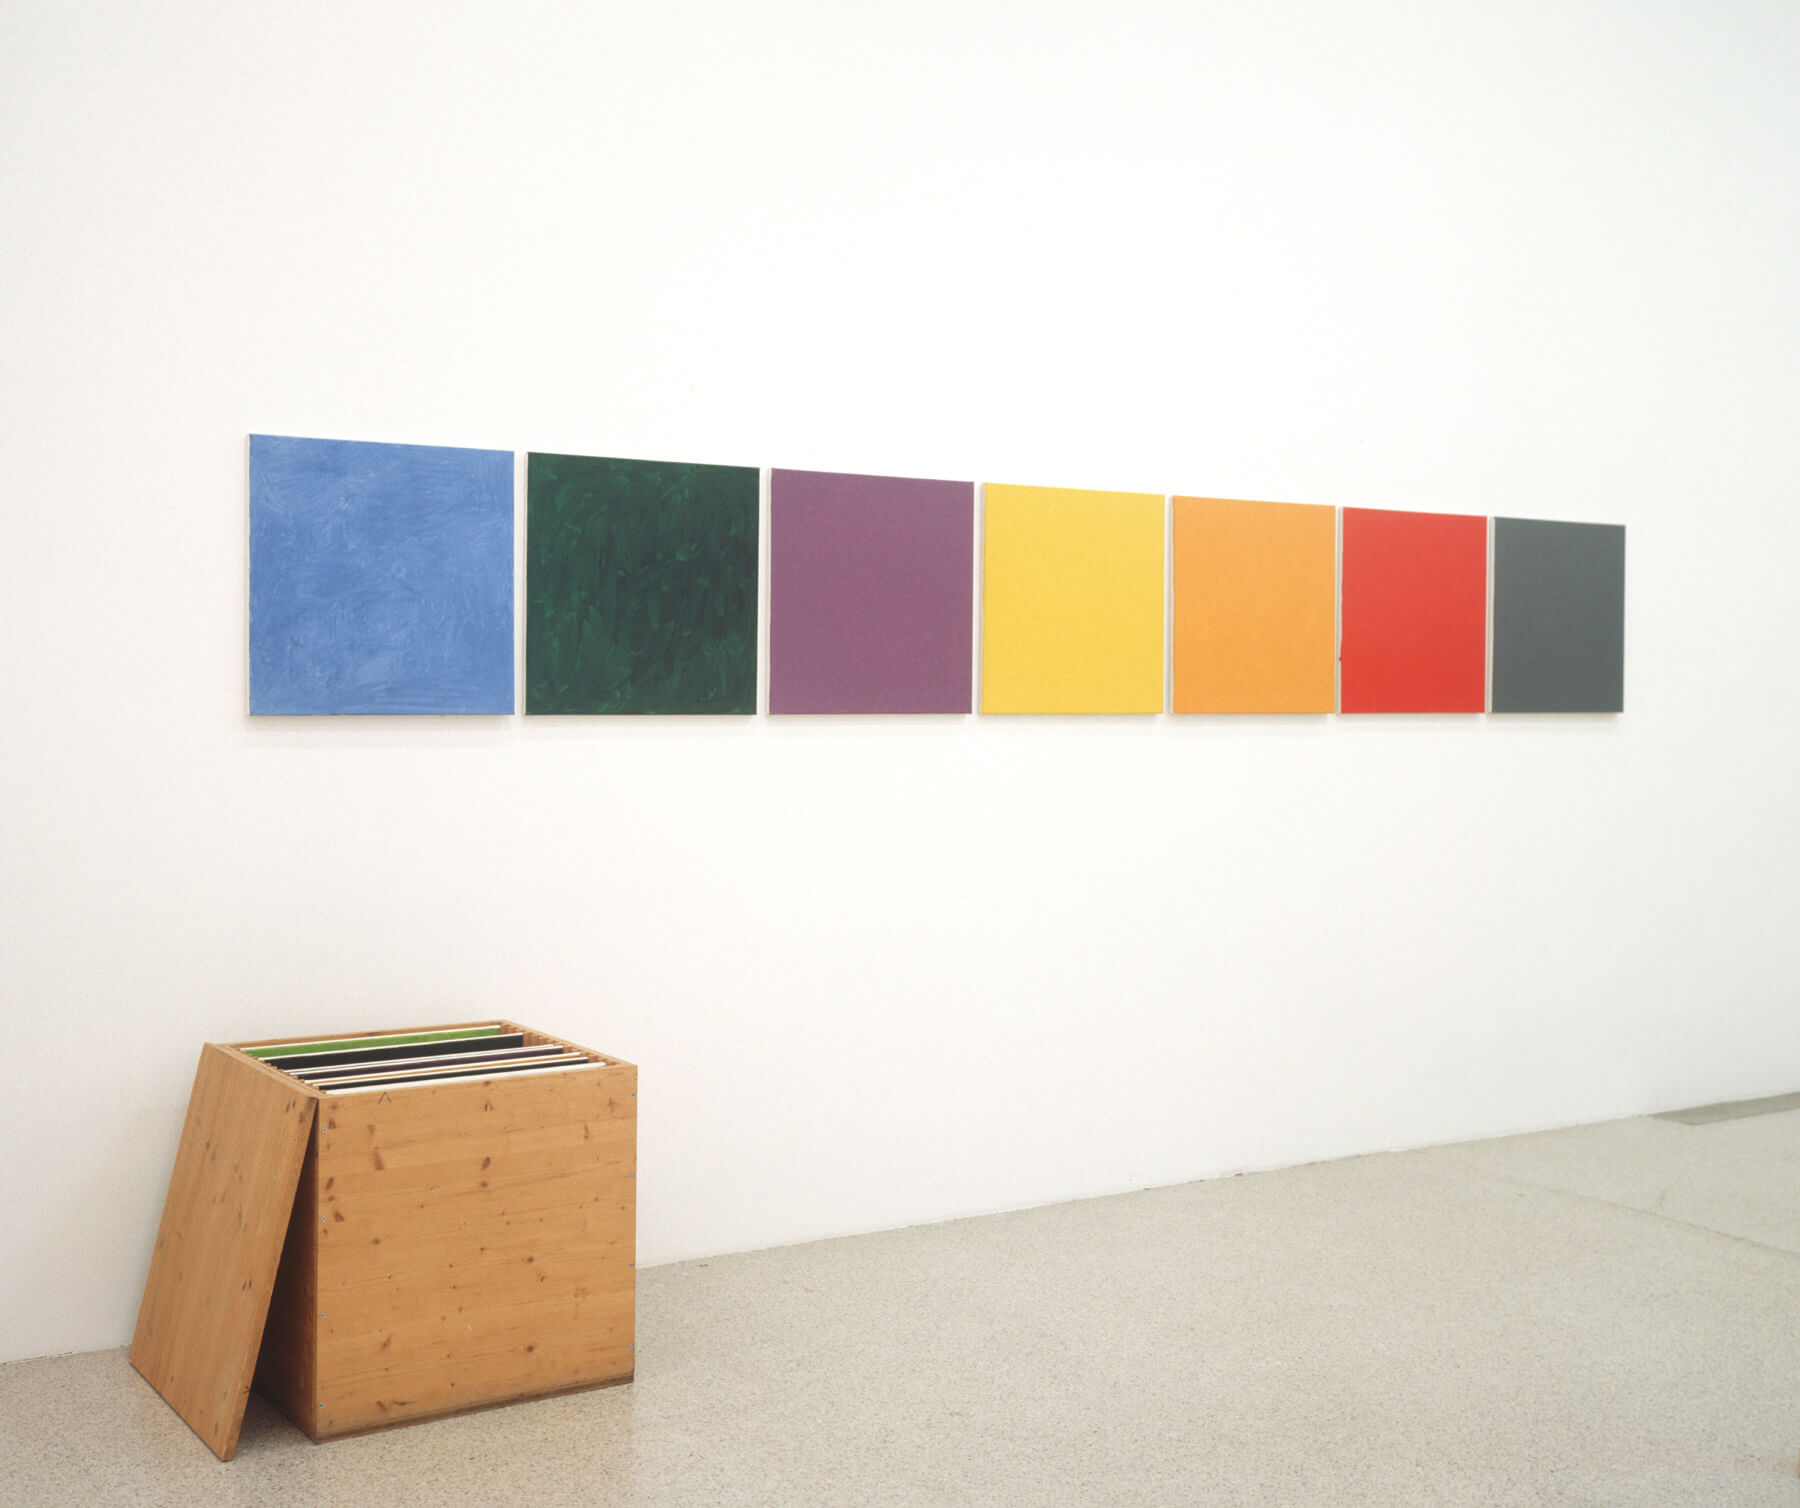 Heimo Zobernig O.T., 1989 Öl auf Leinwand, 15 Bildtafeln in Holzkiste / Oil on canvas, 15 pictures in wooden box, 205 x 432 x 70 cm Sammlung und Gertraud Bogner im mumok / collection Dieter and Gertraud Bogner at mumok seit/since 2006 © Bildrecht Wien / Heimo Zobernig, 2016 Photo: mumok.